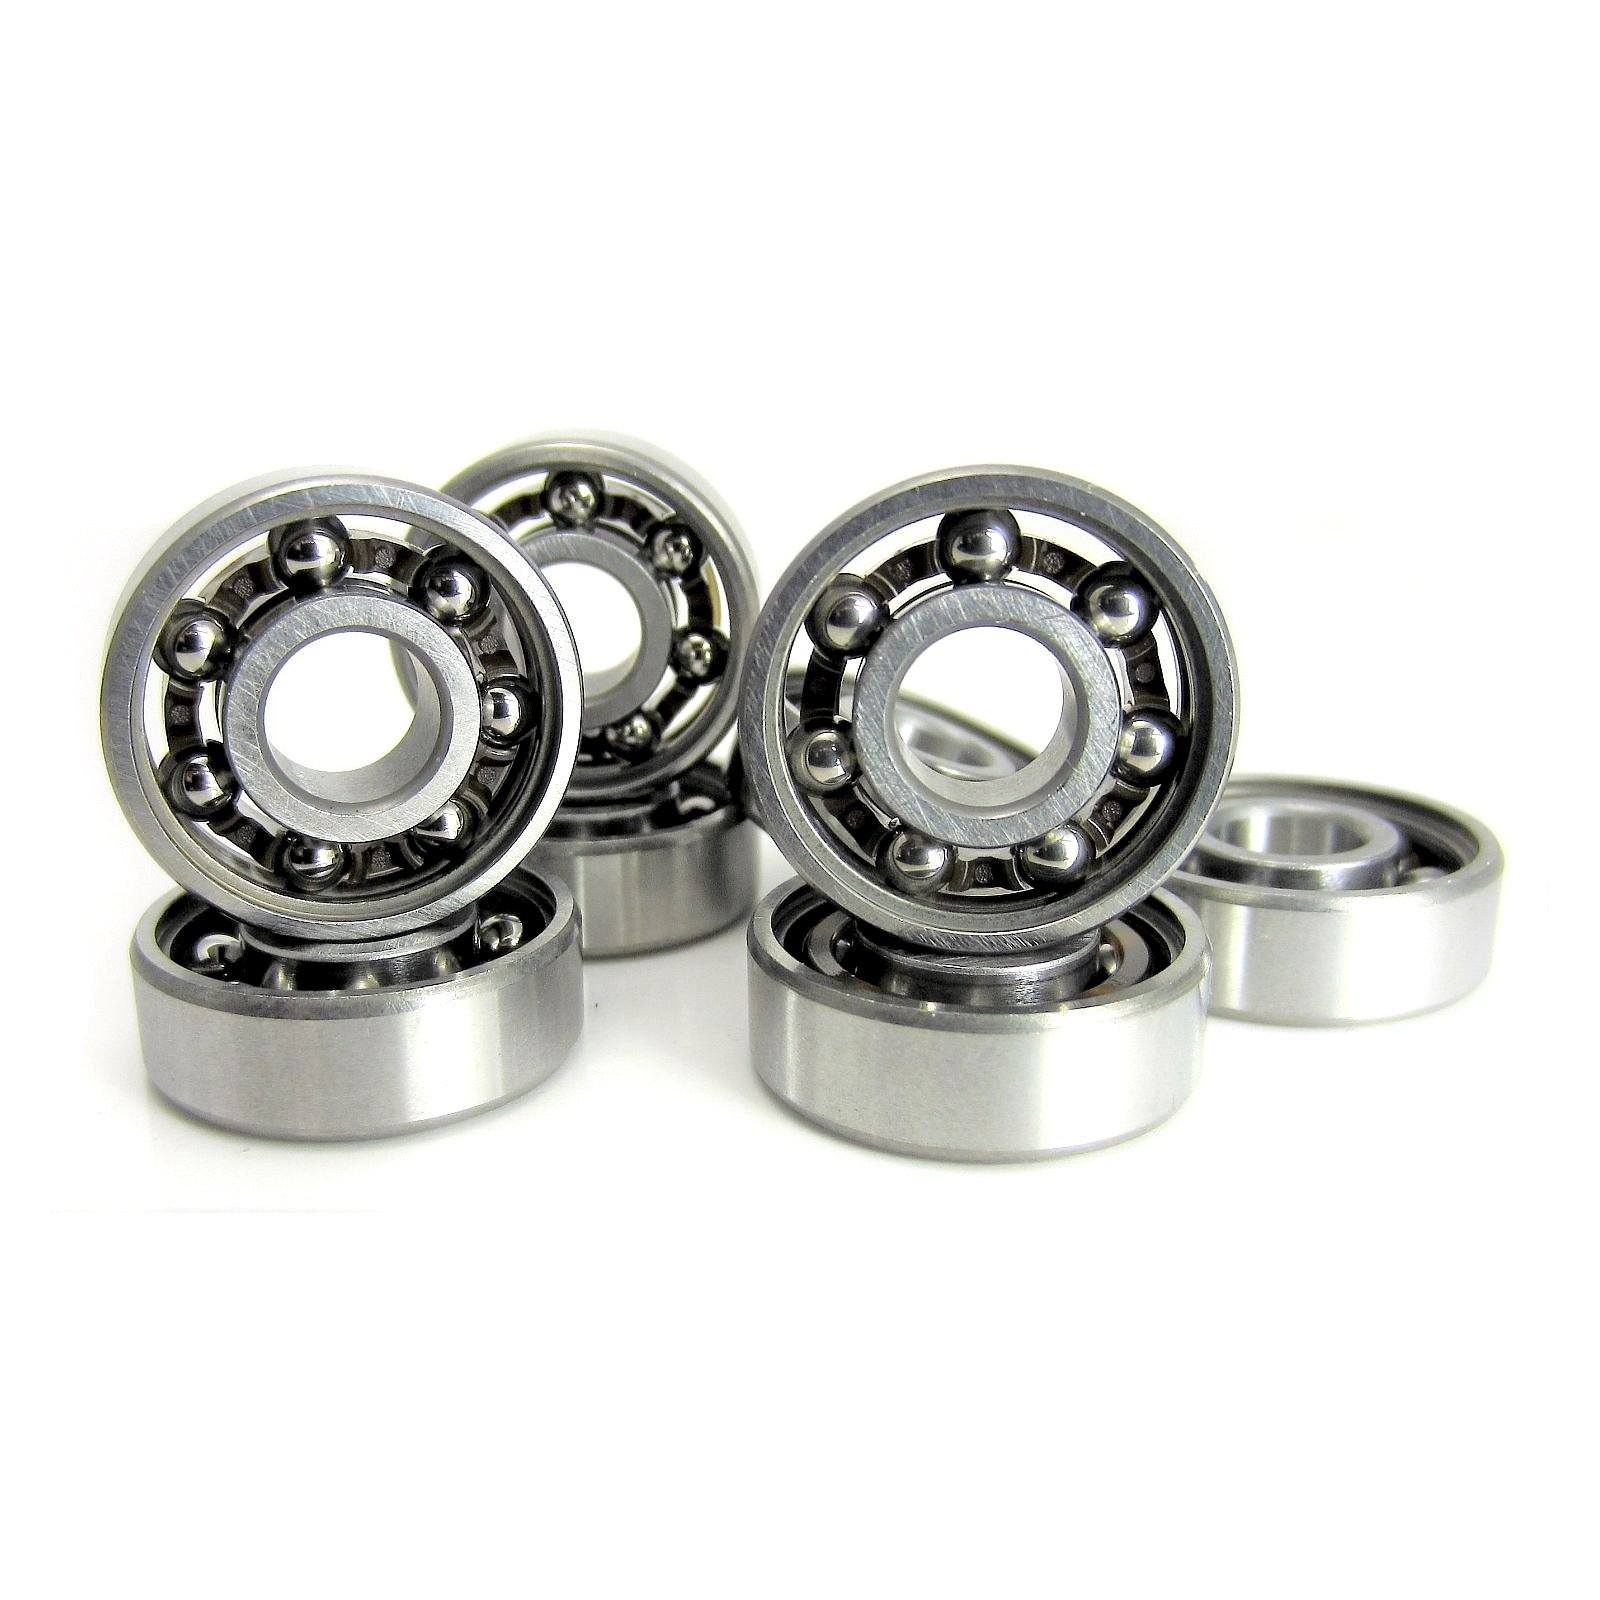 8x22x7mm 608 Open A9 Precision Ball Bearings (8) by TRB RC - trb-rc-bearings